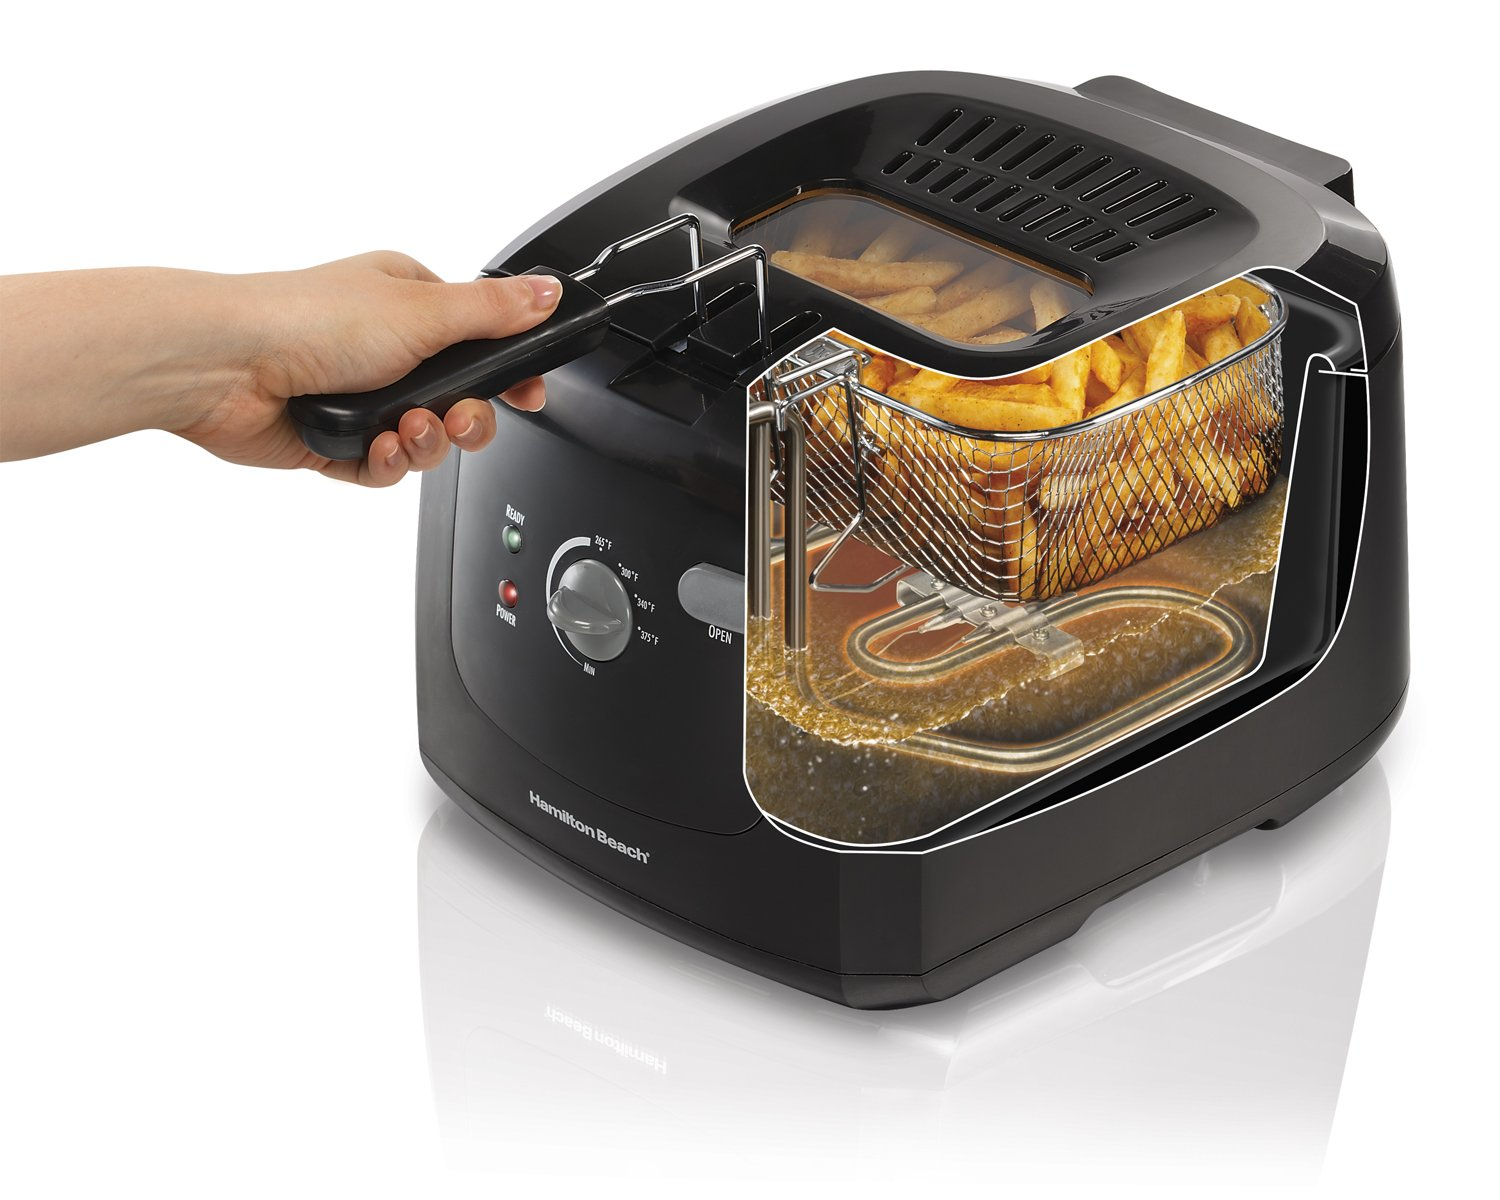 Cool Touch With Basket Professional Grade 2 Liter Oil Capacity 35021 Deep Fryer Hamilton Beach Electric